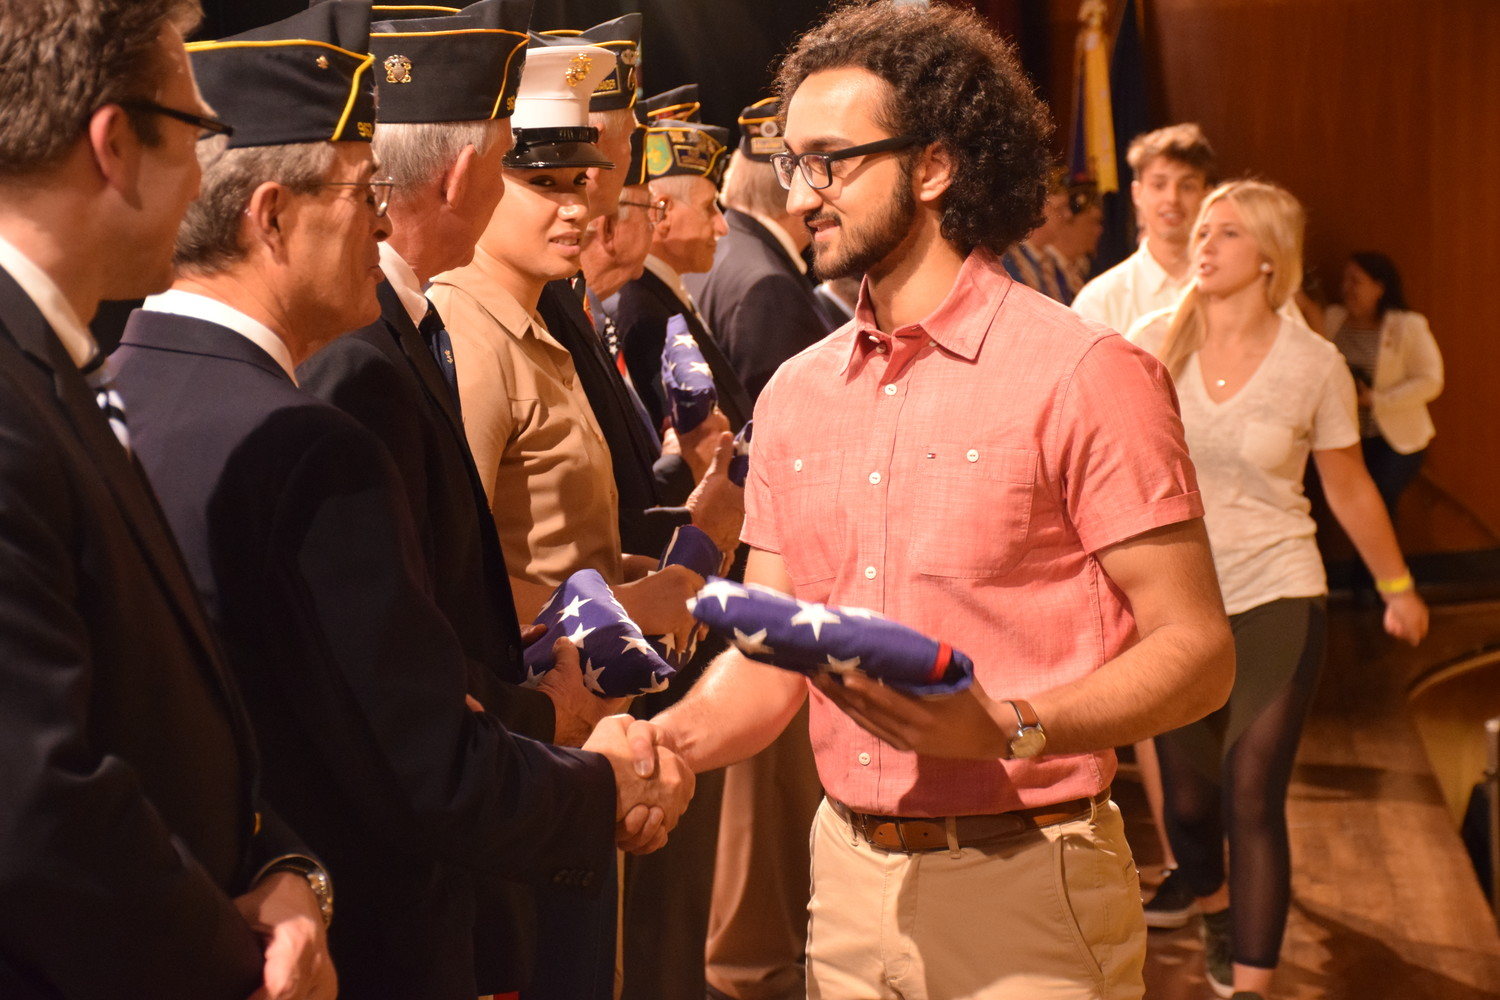 Locust Valley High School Senior Leonardo D'Auria Gupta was honored to accept a flag from a veteran.